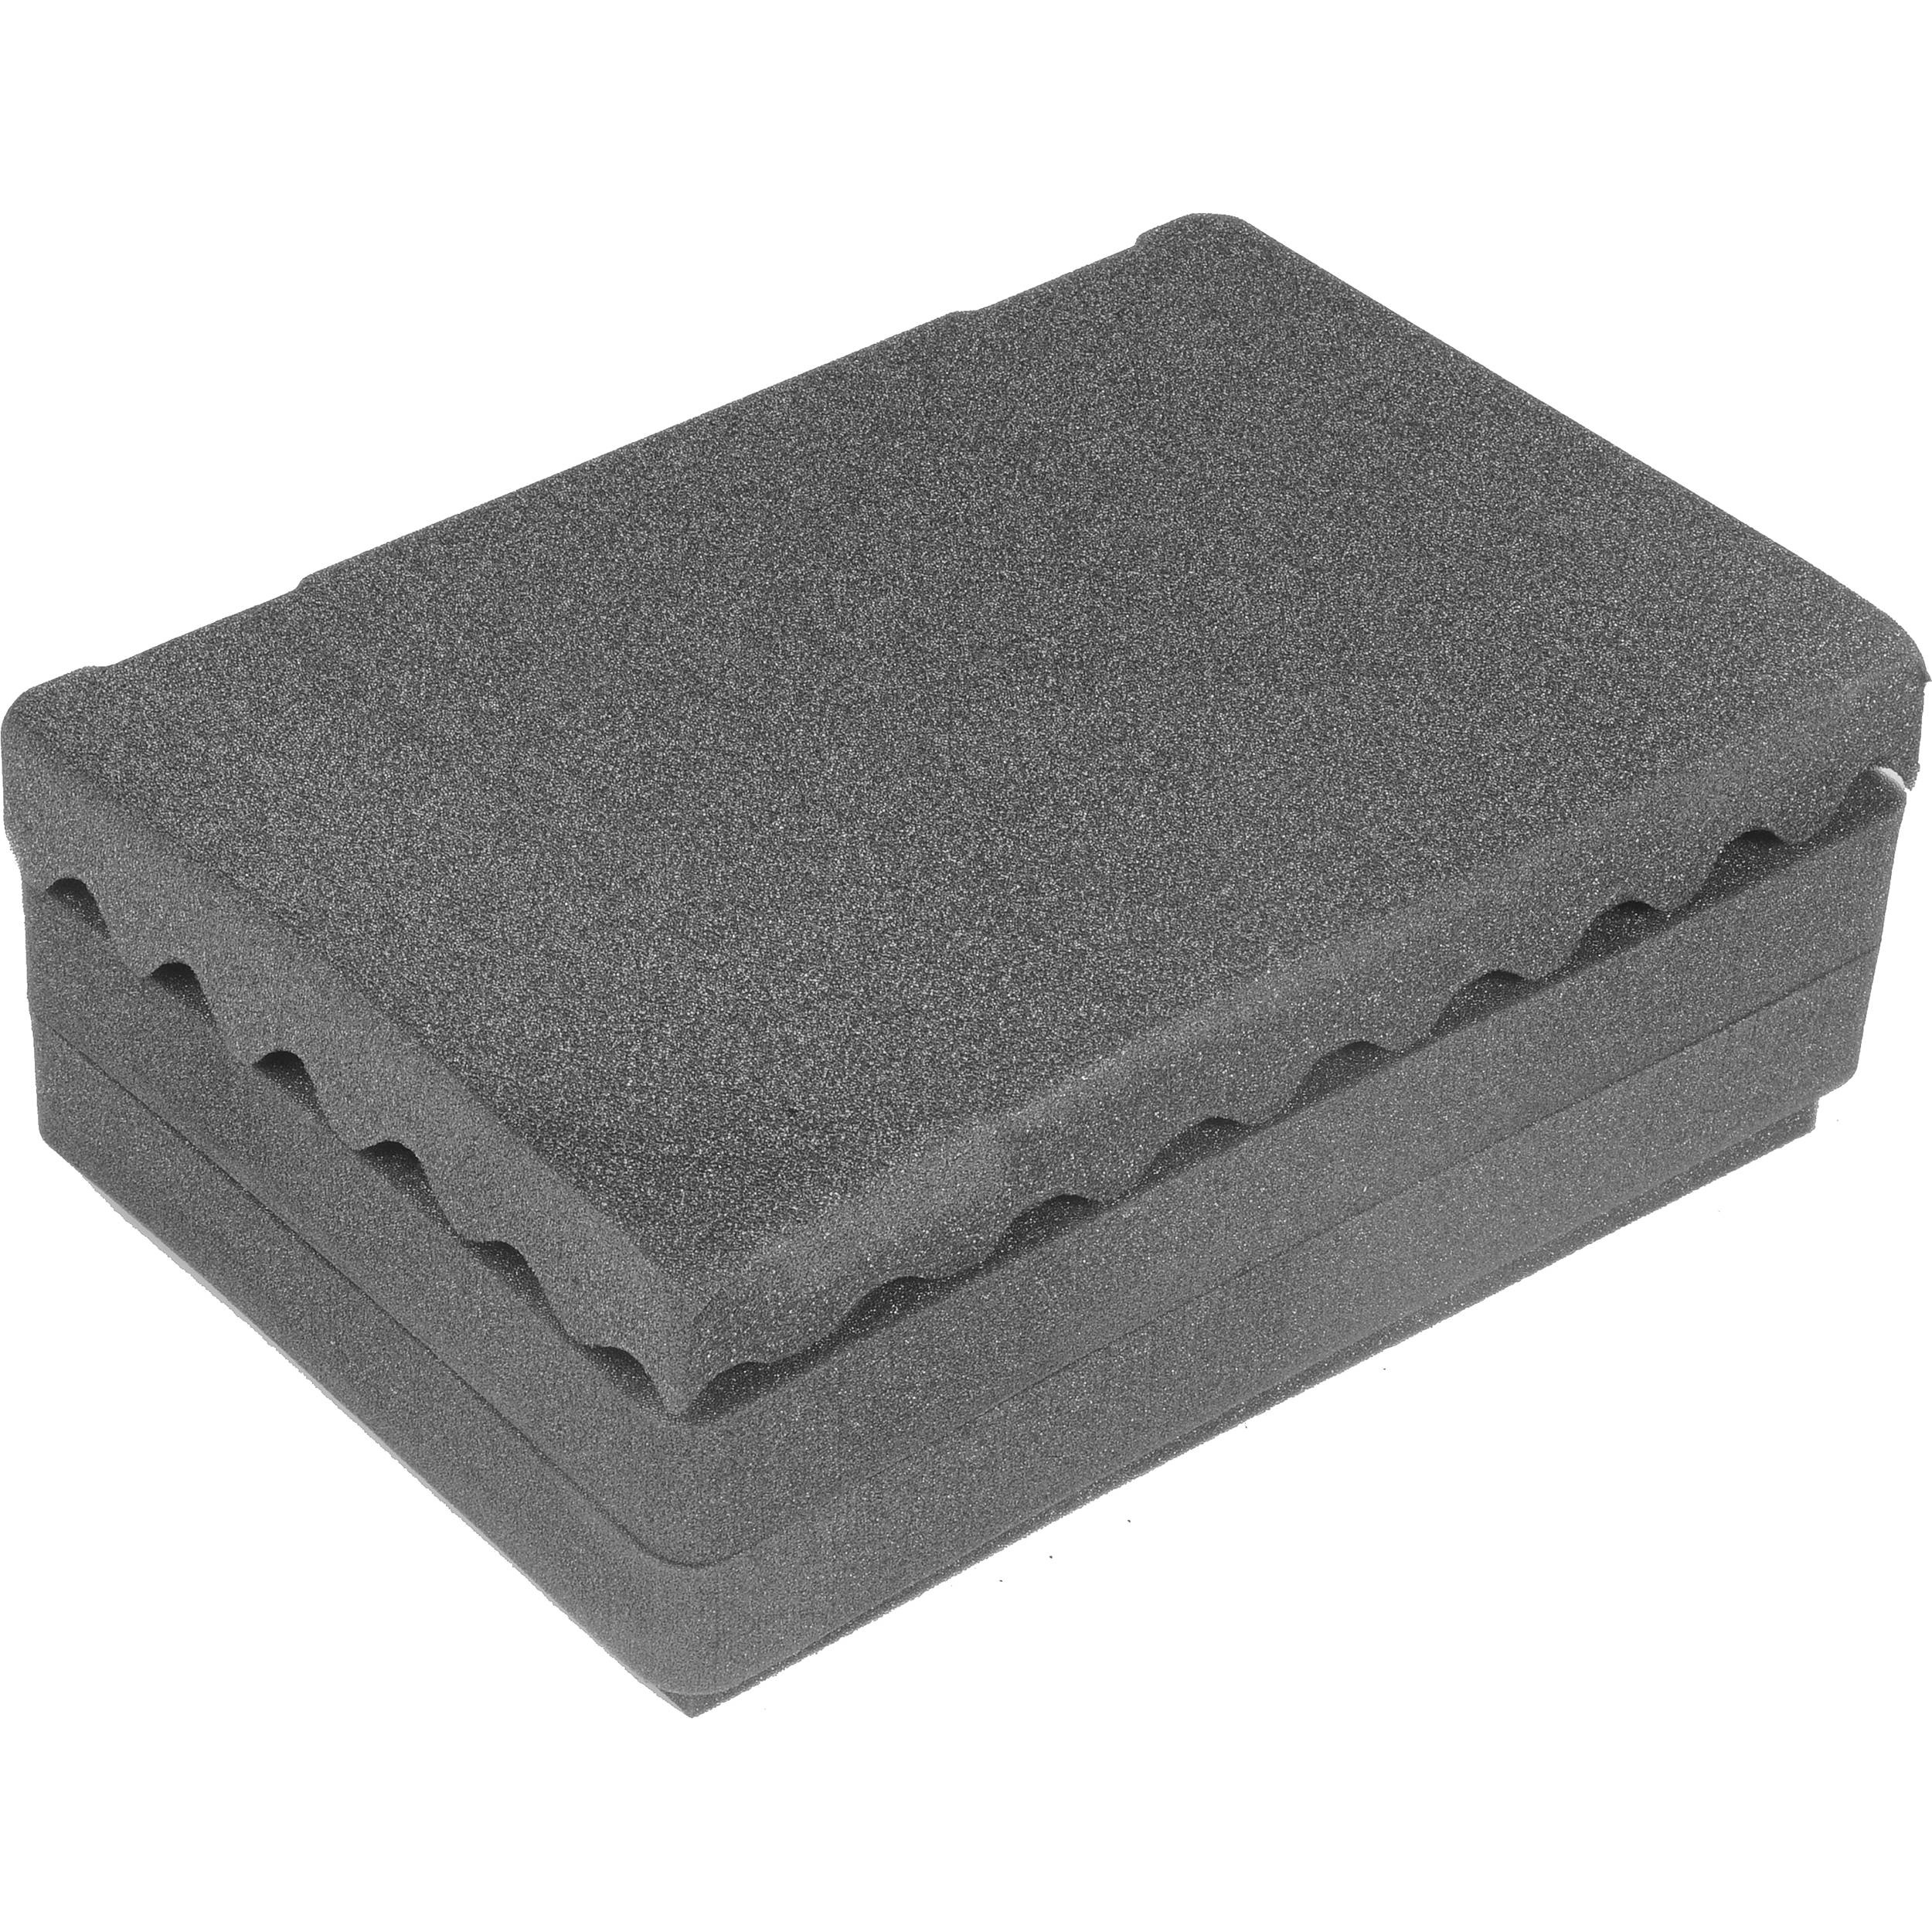 Pelican iM2975 Foam Set